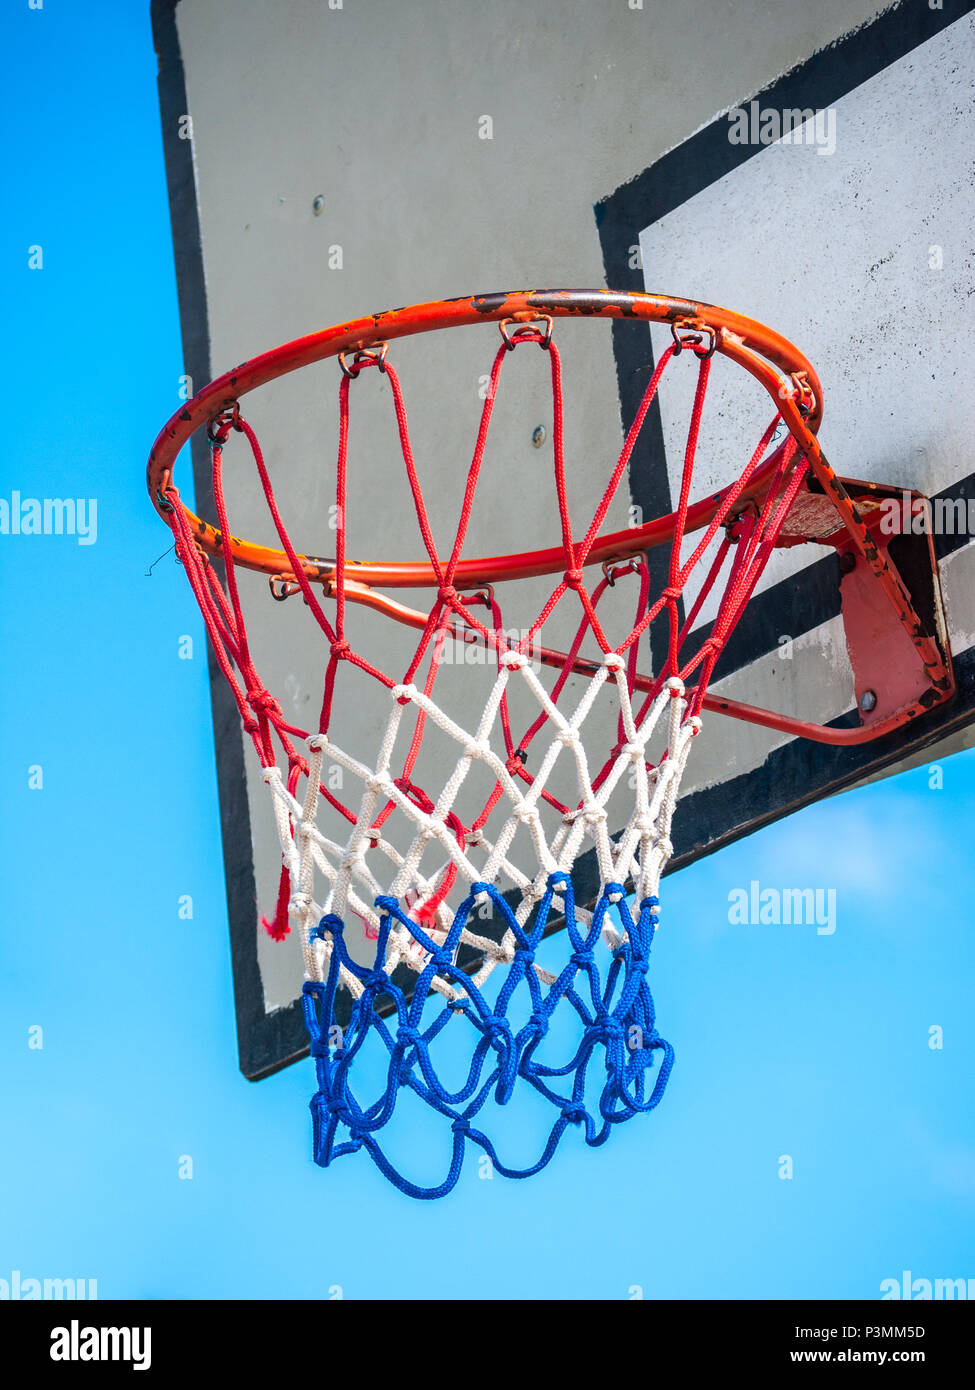 Close up of a basketball hoop and backboard against cloudless blue sky - Stock Image